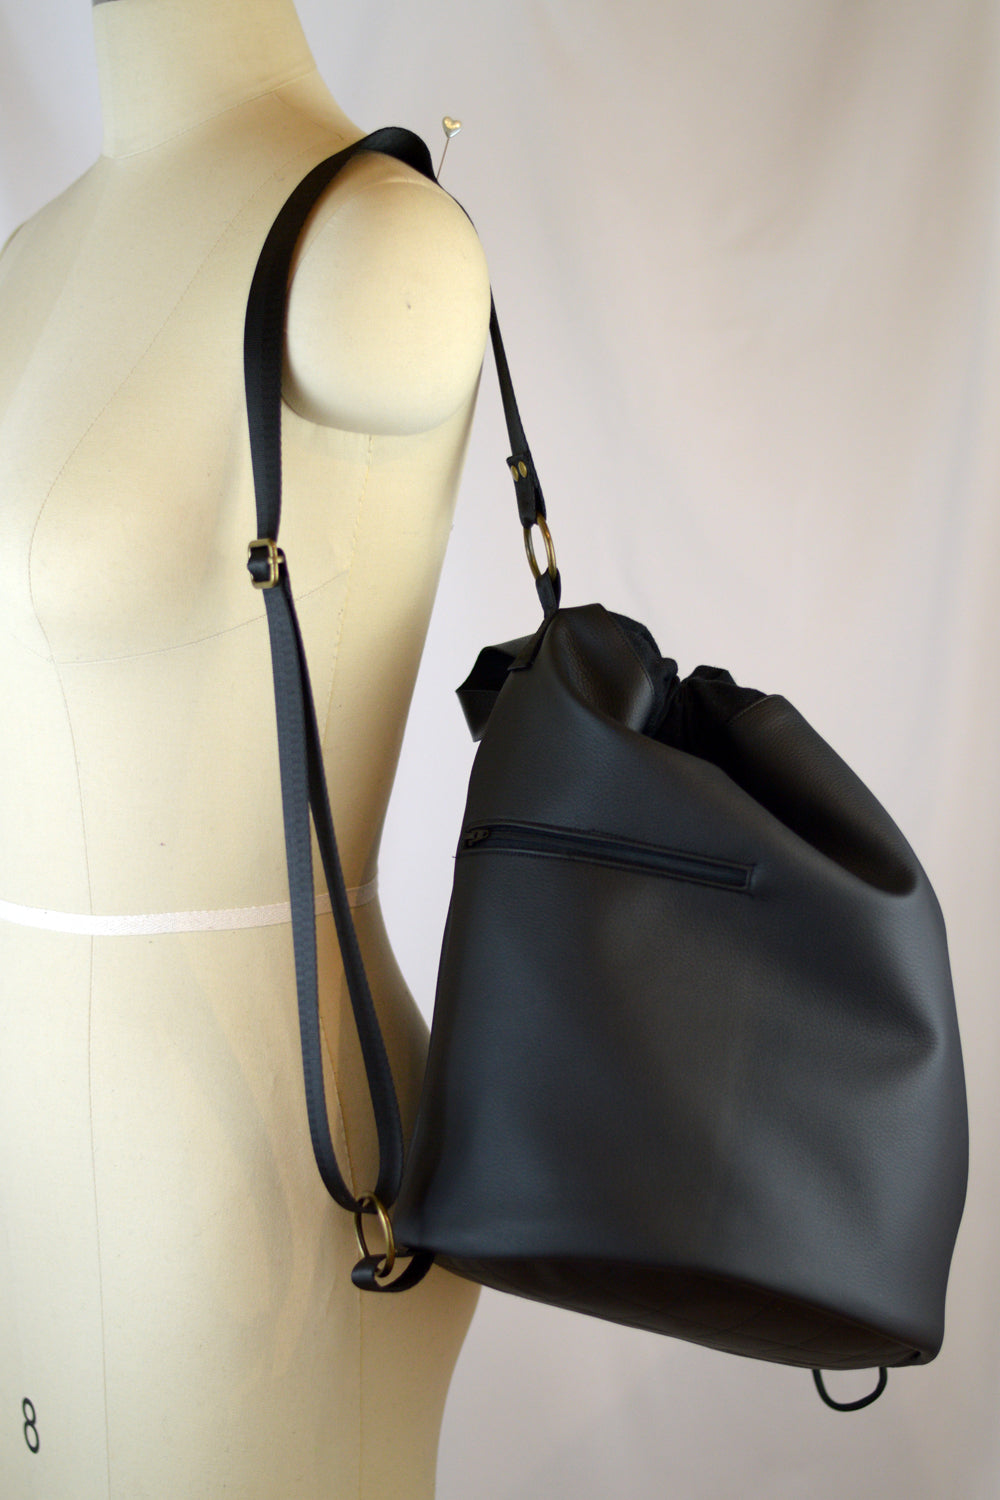 Black Faux Leather | SS 2019 Drawstring Bucket Bag | READY TO SHIP